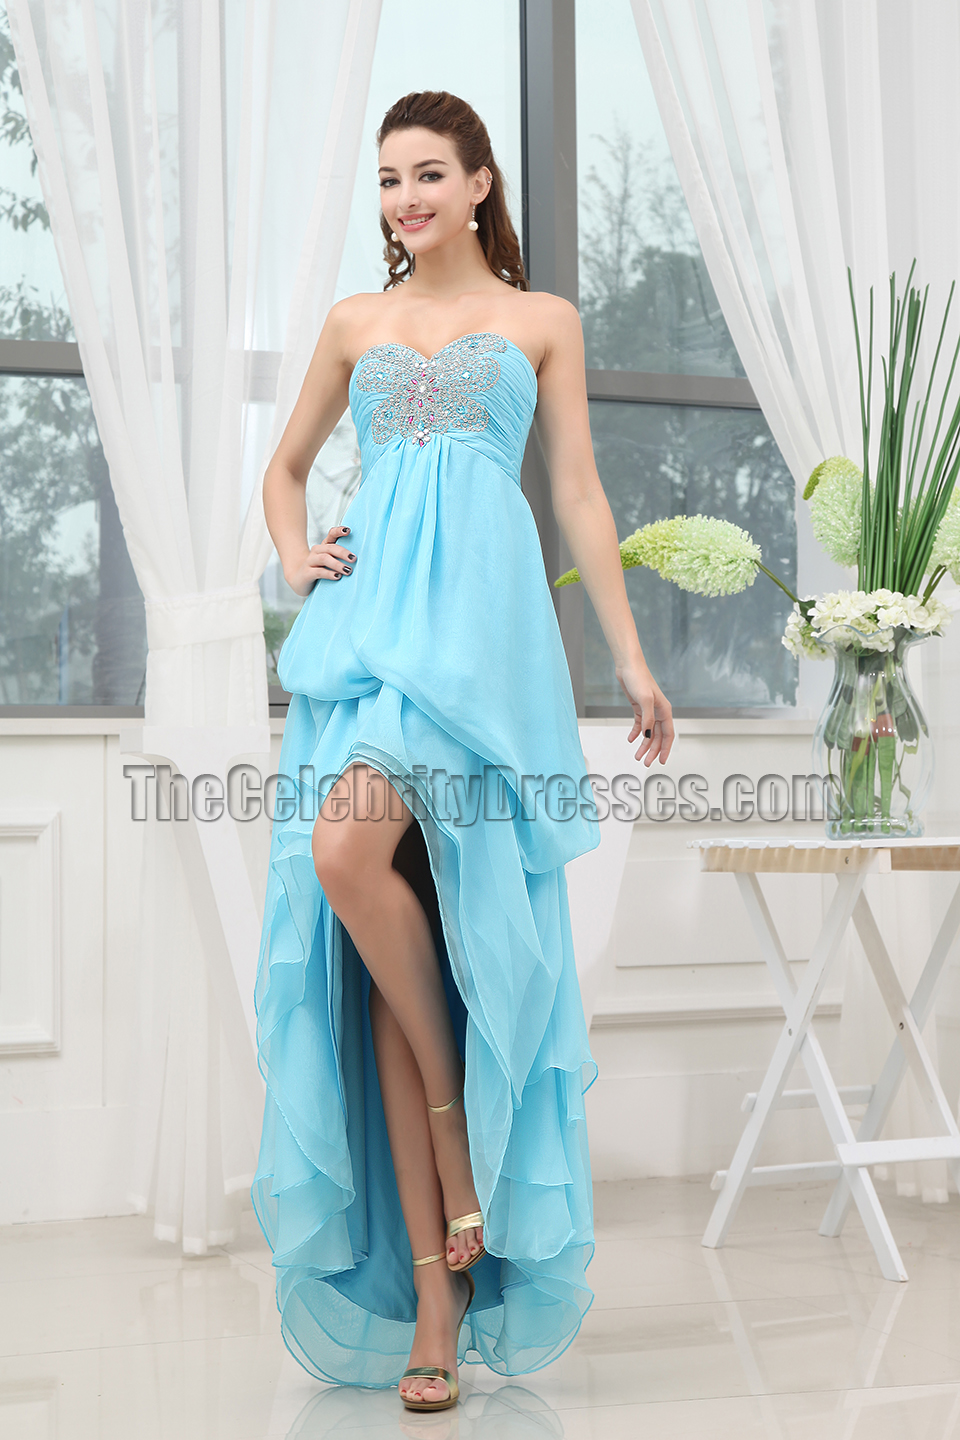 High Low Dresses Prom For Less 2018, High Low Dresses Prom On ...